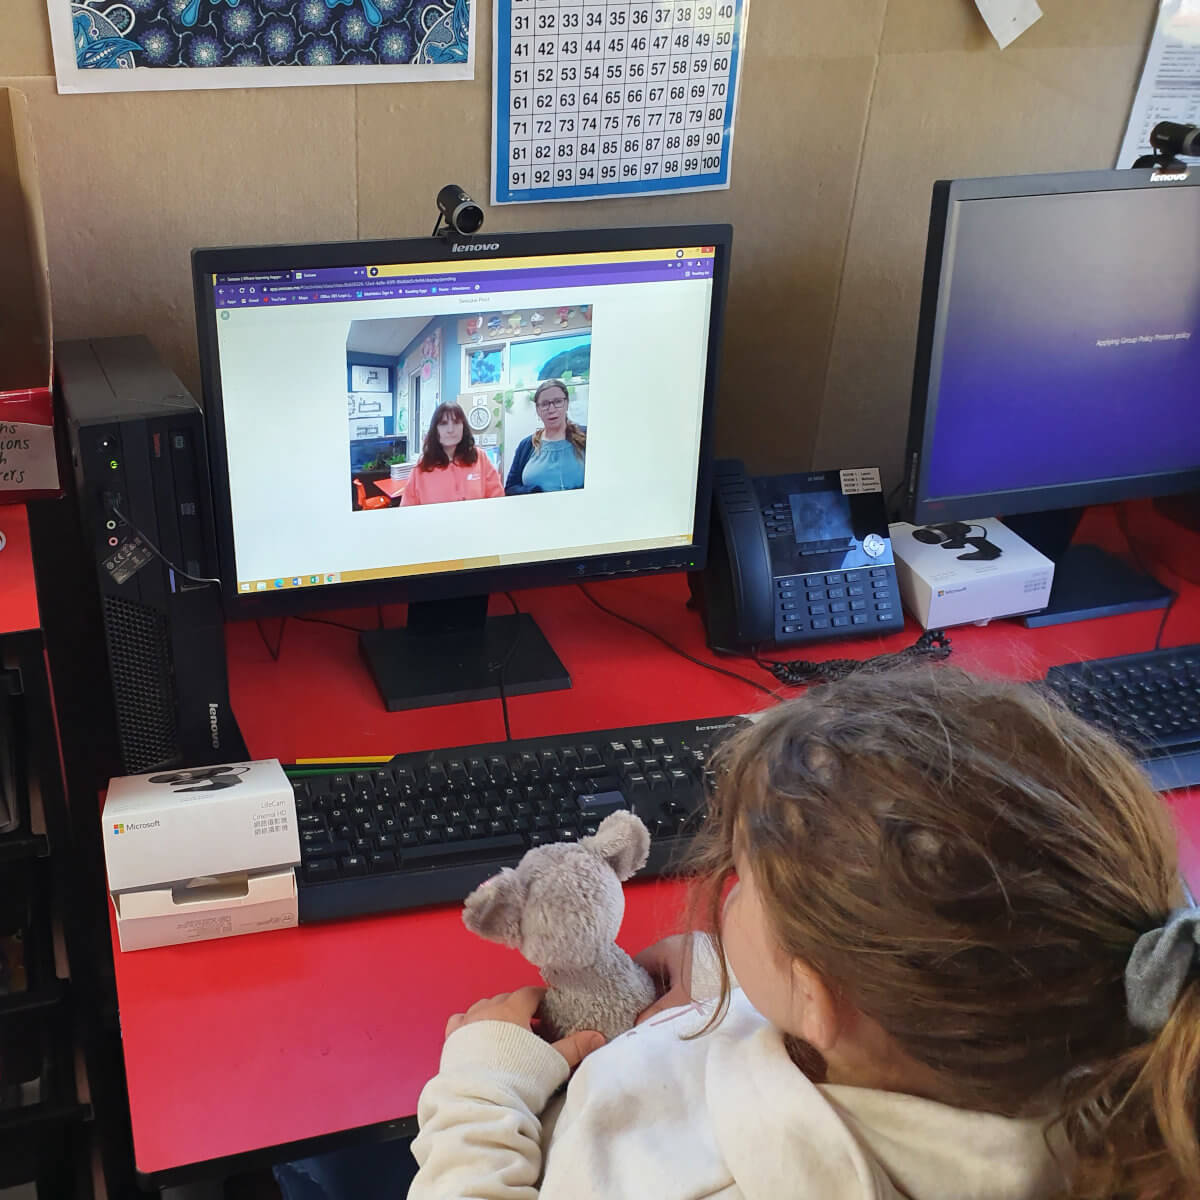 Remote Learning Again with a Video Call